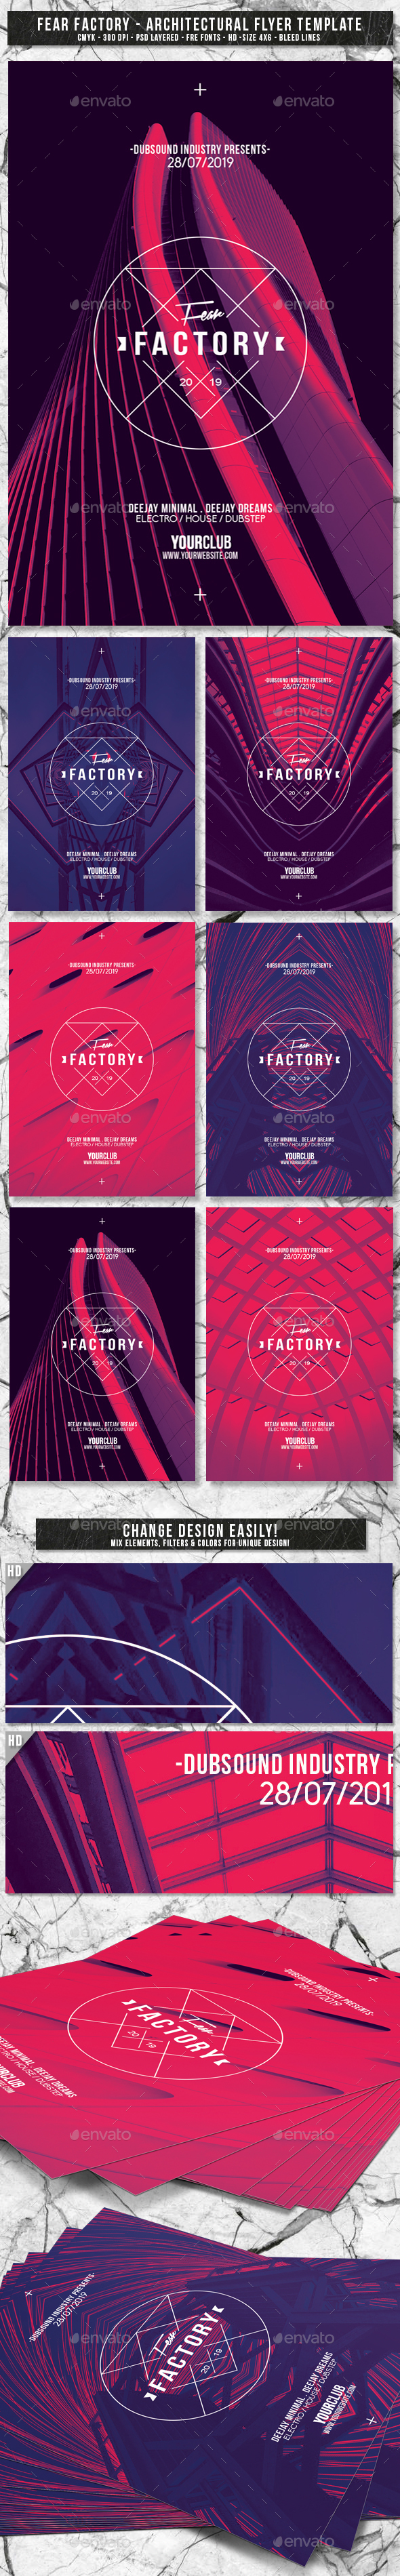 Fear Factory | 6in1 Architectural Flyer PSD Template - Events Flyers